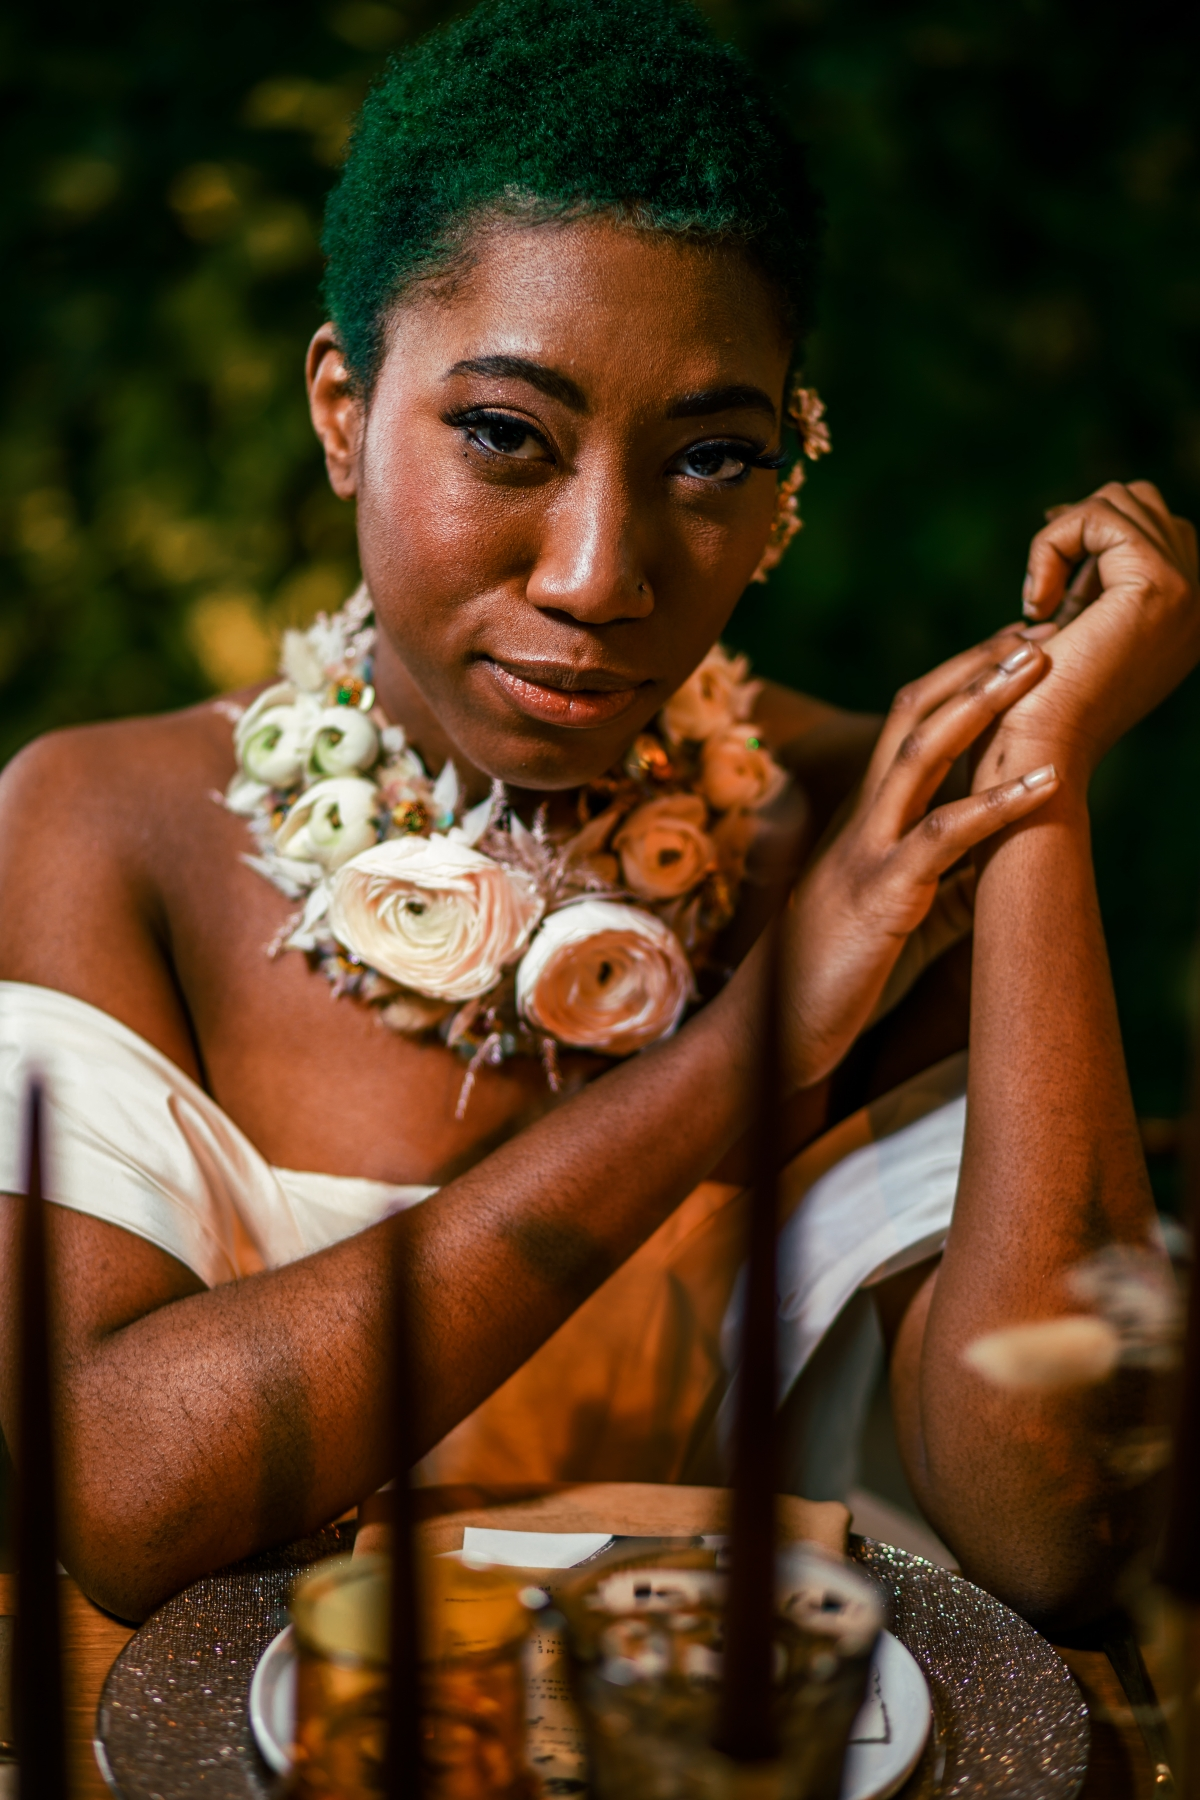 Lush Fantasy Chicago Wedding Inspiration Lakeshore in Love Tuan B 4